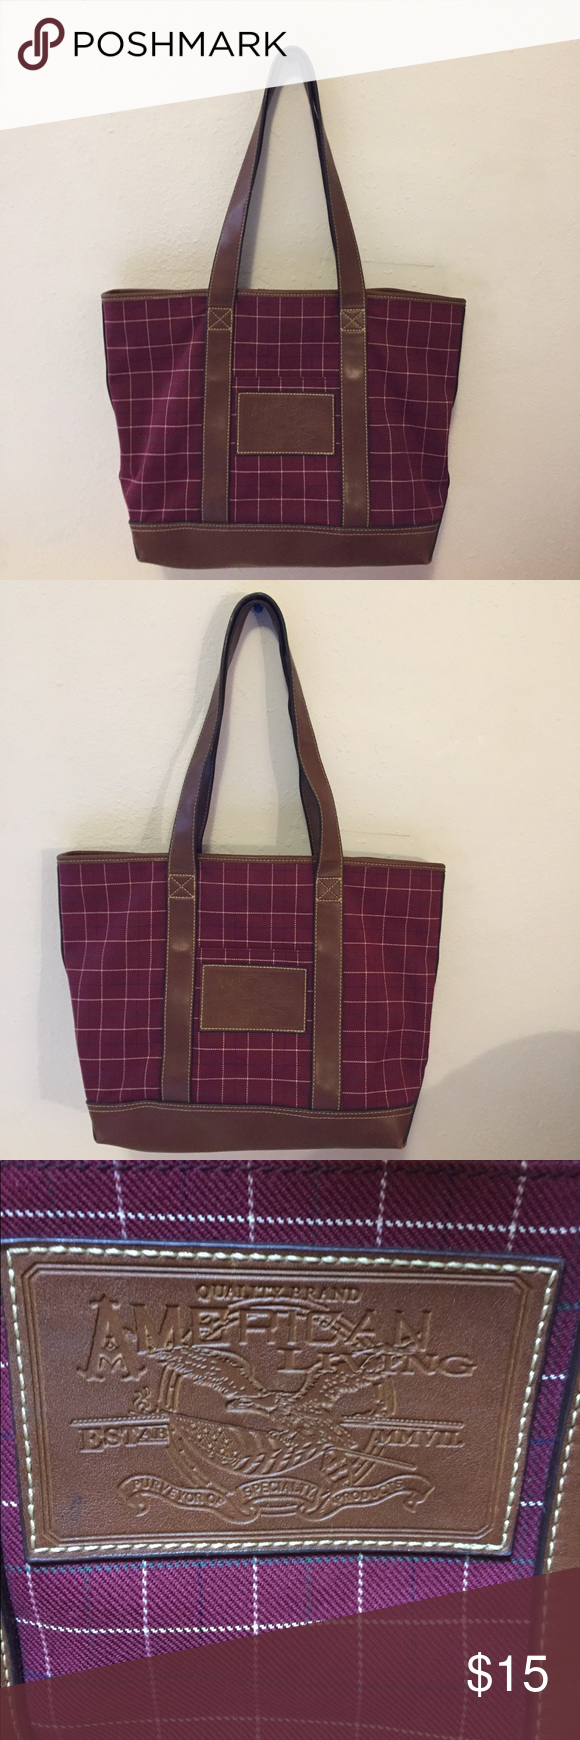 American Living Purse 12 X17 Inch Burgundy And Multi Color Bags Shoulder